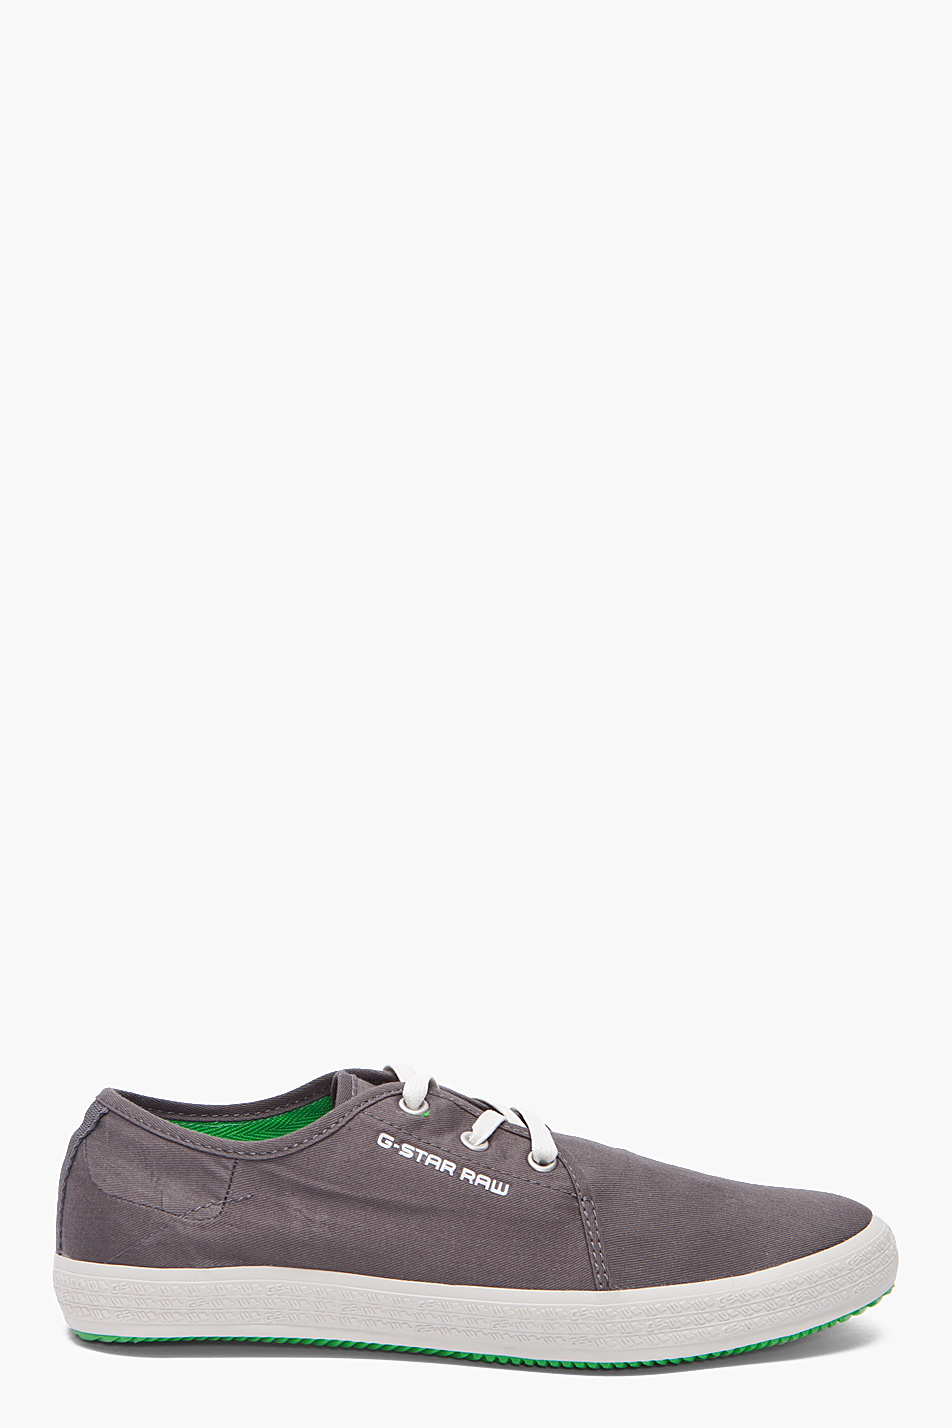 g star raw dash avery sneakers in gray for men lyst. Black Bedroom Furniture Sets. Home Design Ideas